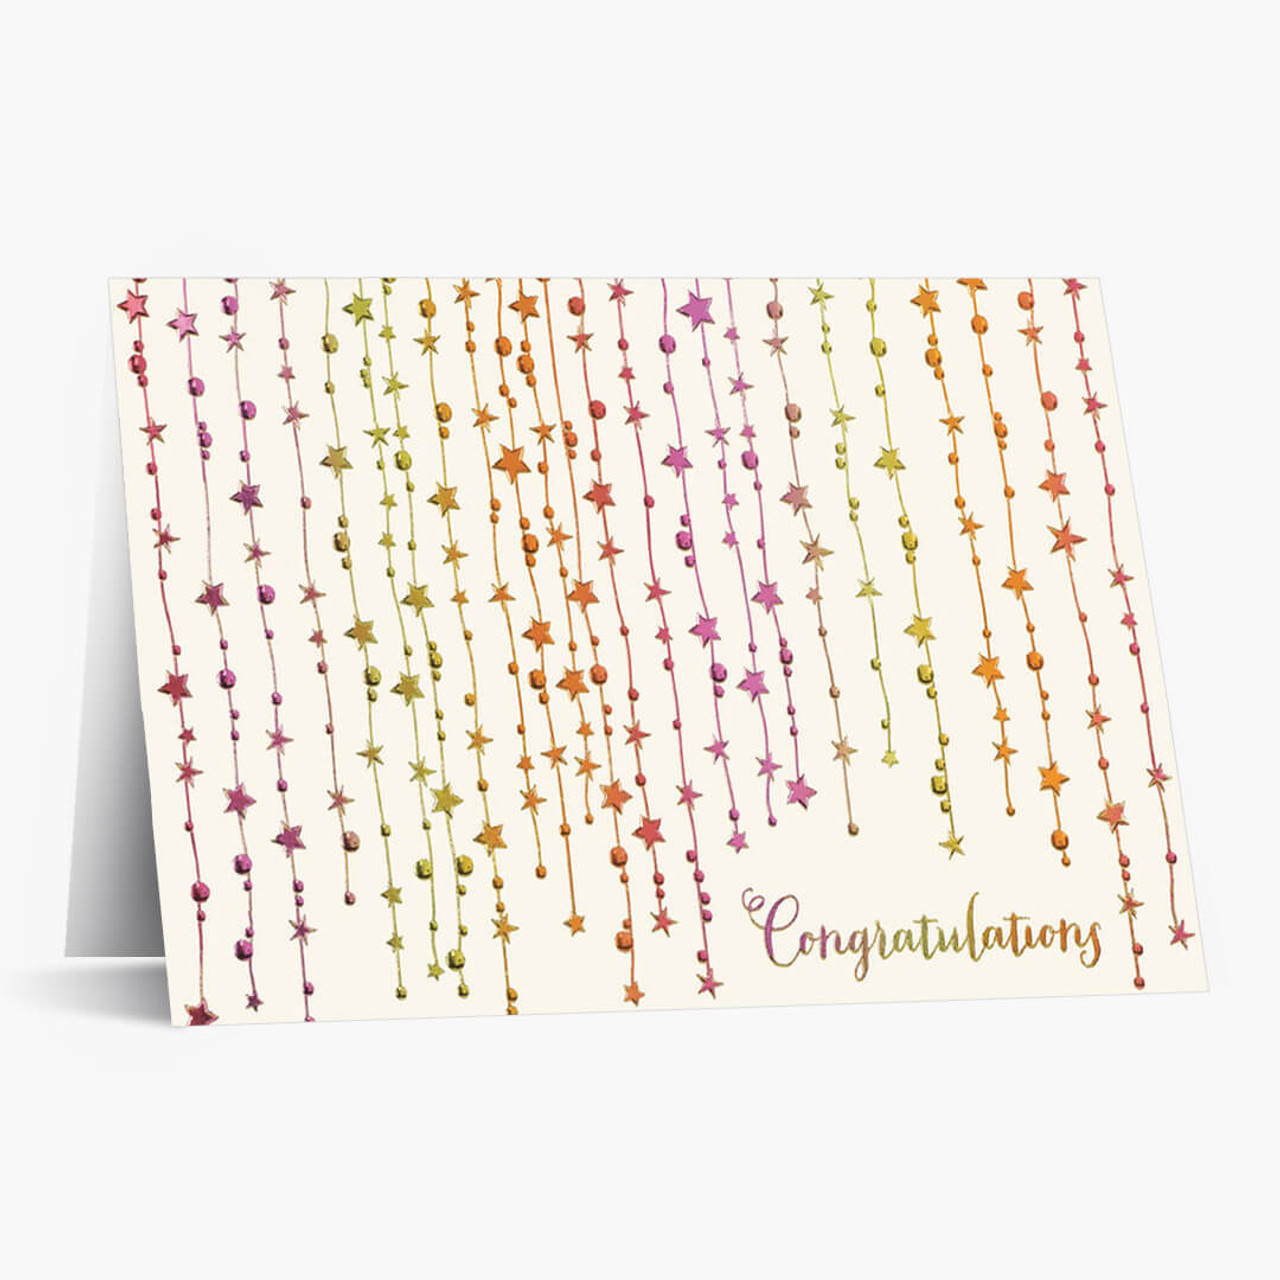 Star Streamers Congratulations Card